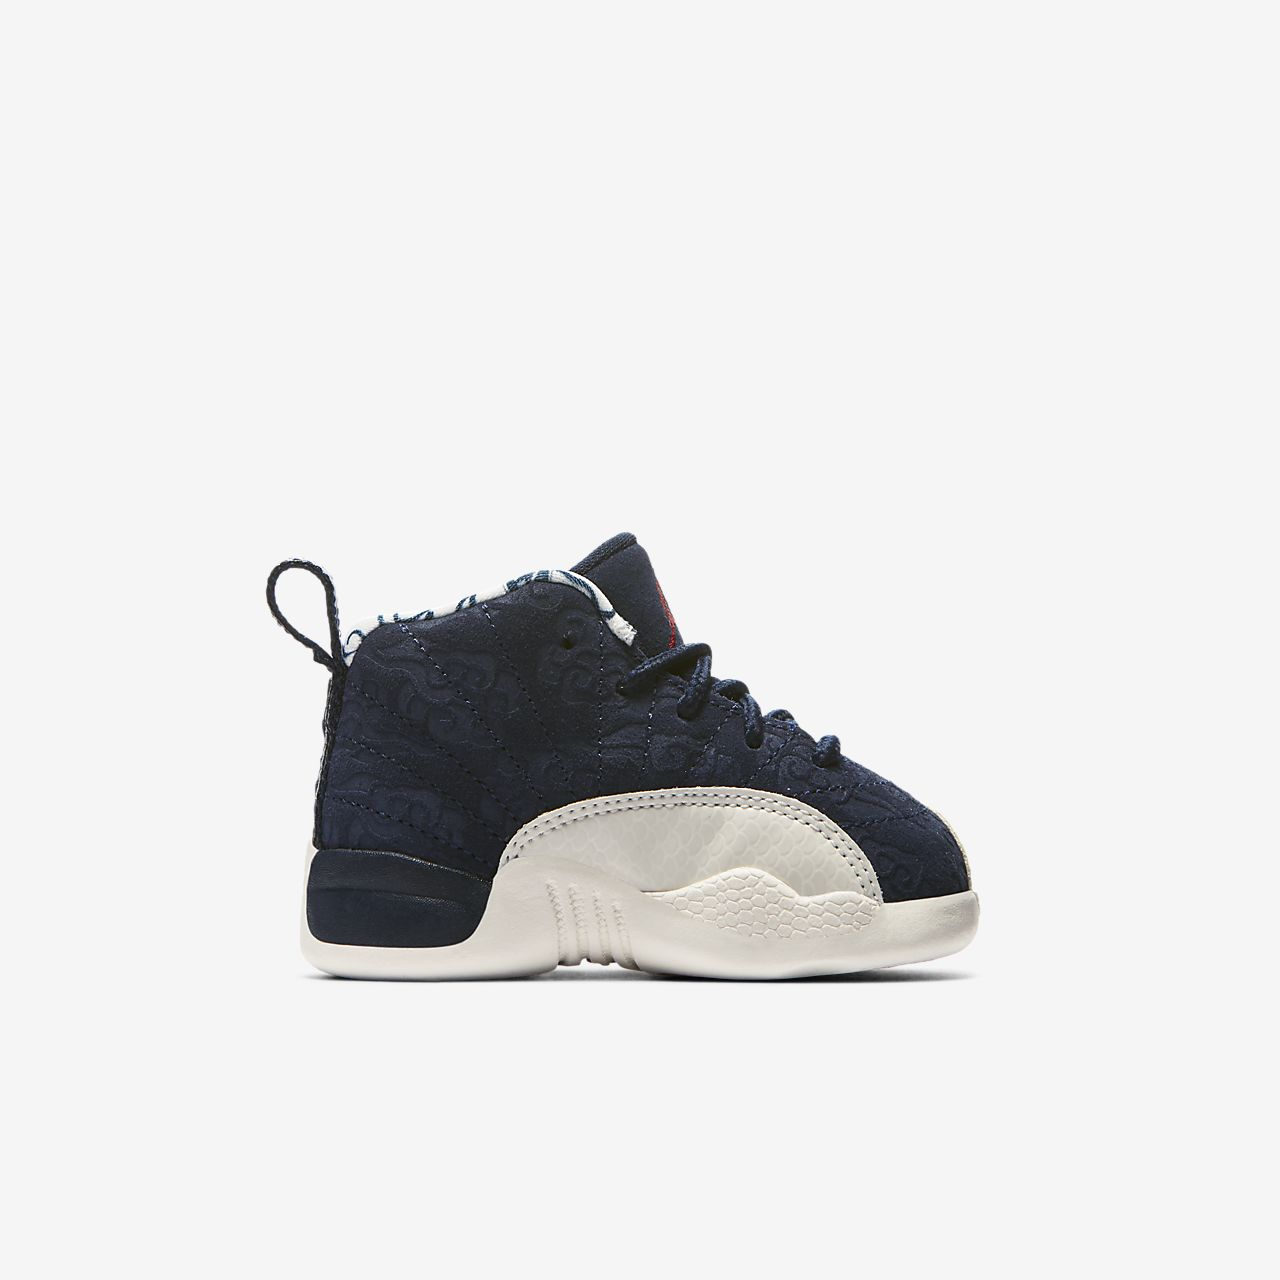 huge discount 46f0c a5101 Air Jordan 12 Retro Premium Infant/Toddler Shoe. Nike.com